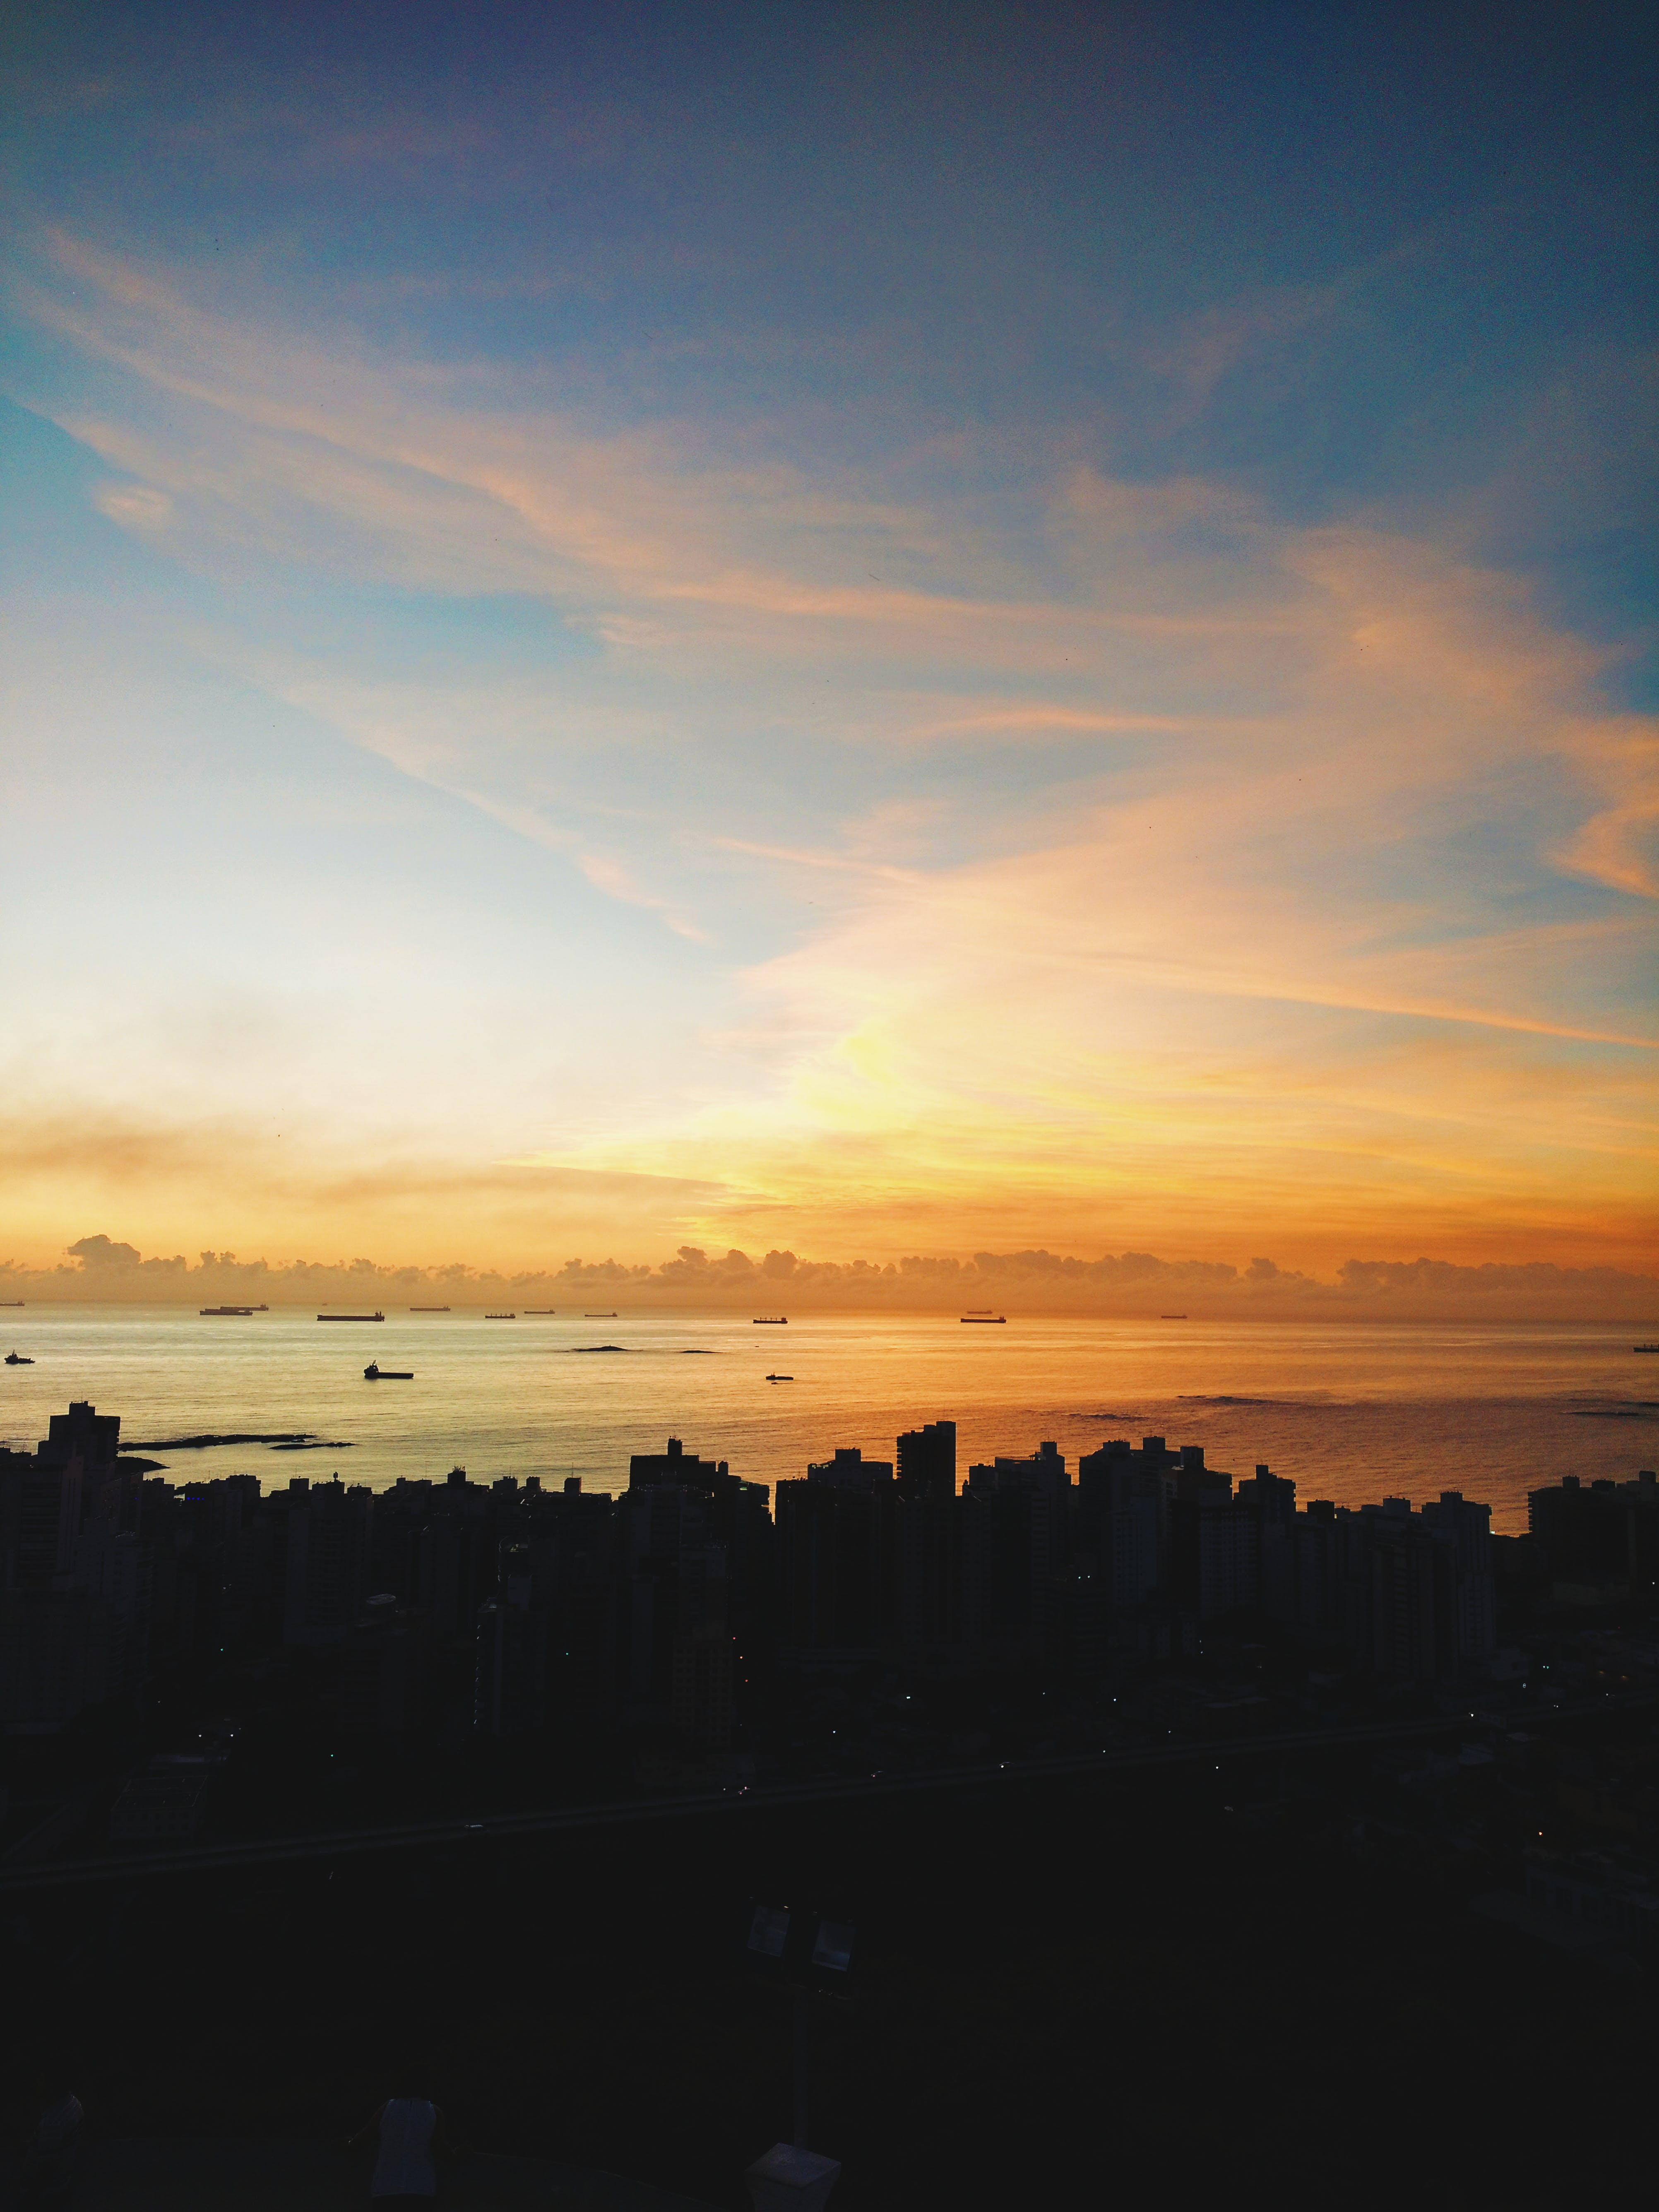 Free stock photo of sea, city, sky, clouds